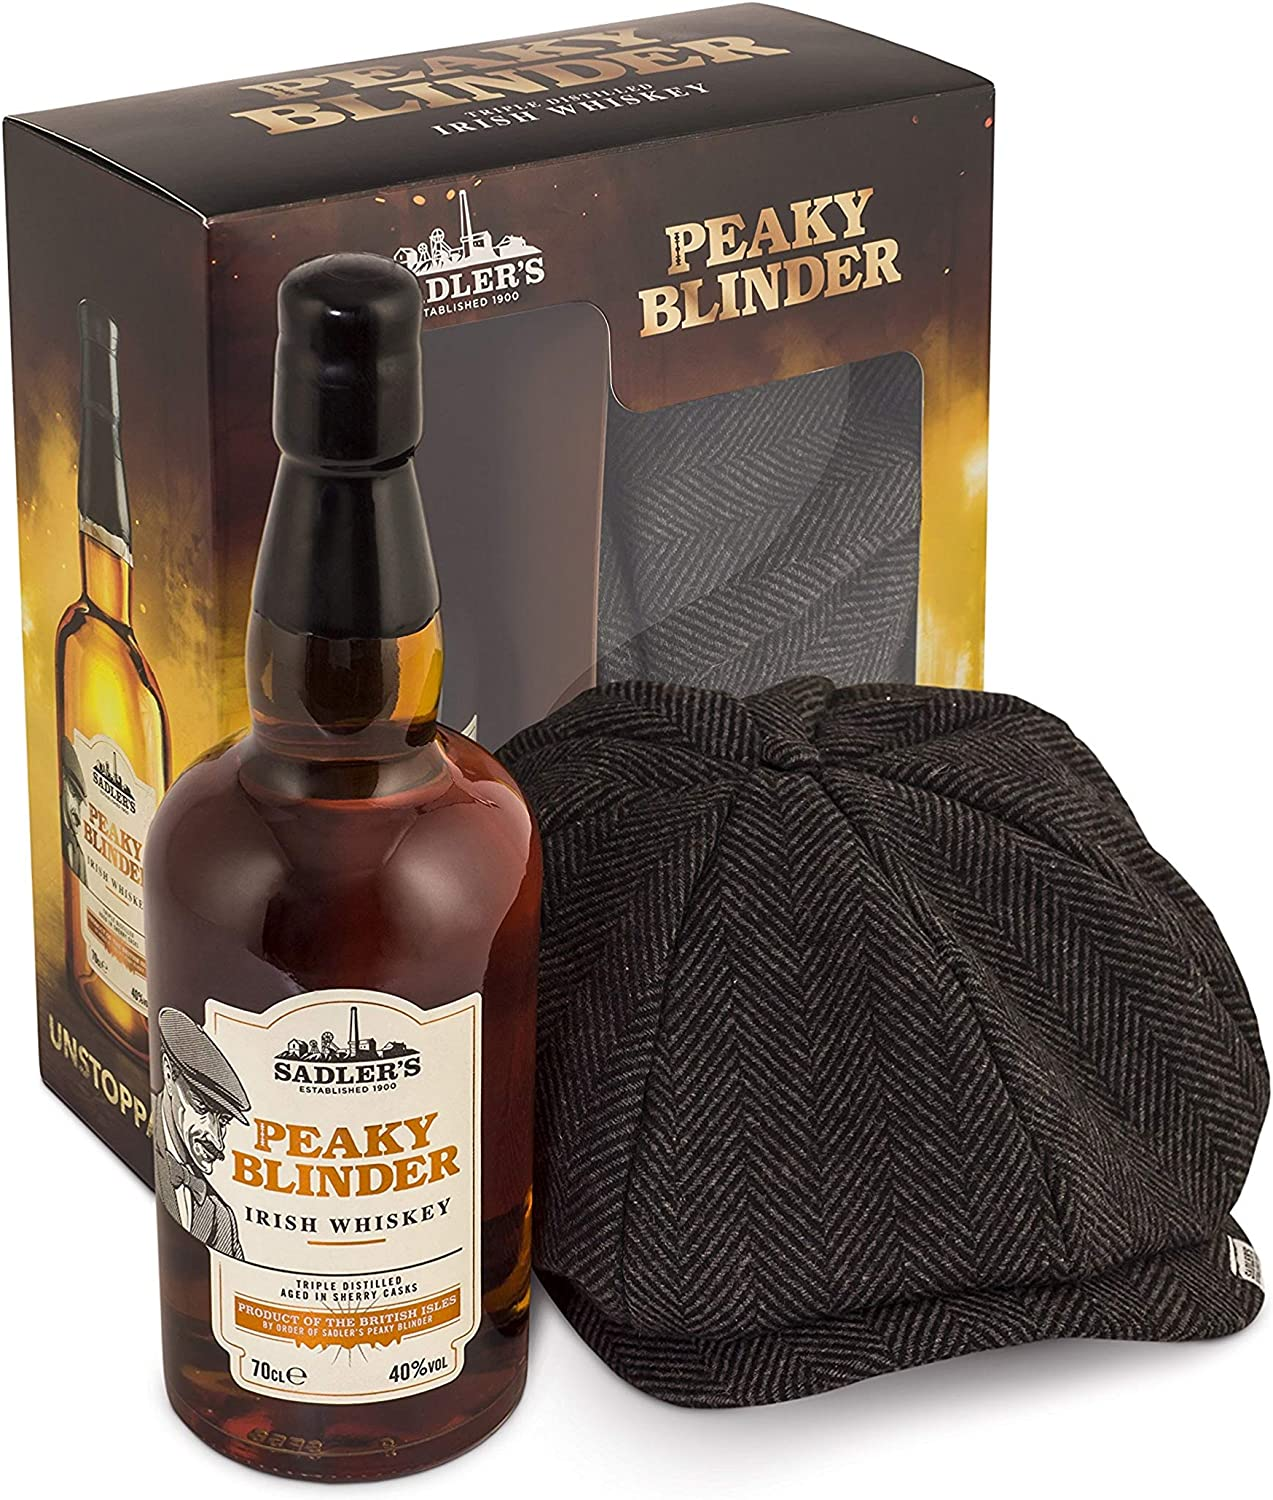 Peaky Blinder Whiskey Gift Set with a Gasby Style Cap in a Gift Box, 70 cl: Amazon.es: Alimentación y bebidas